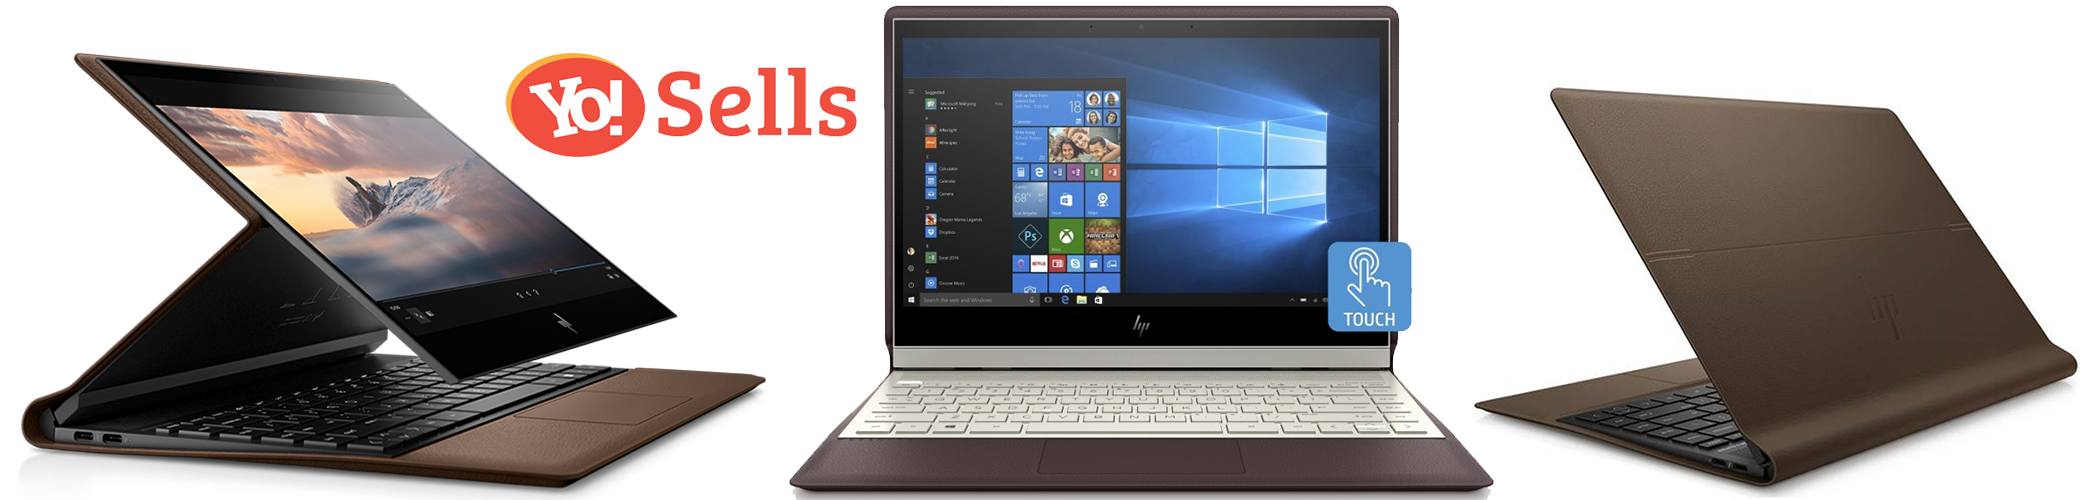 HP Spectre Folio The best Laptops on Amazon (Top 10)